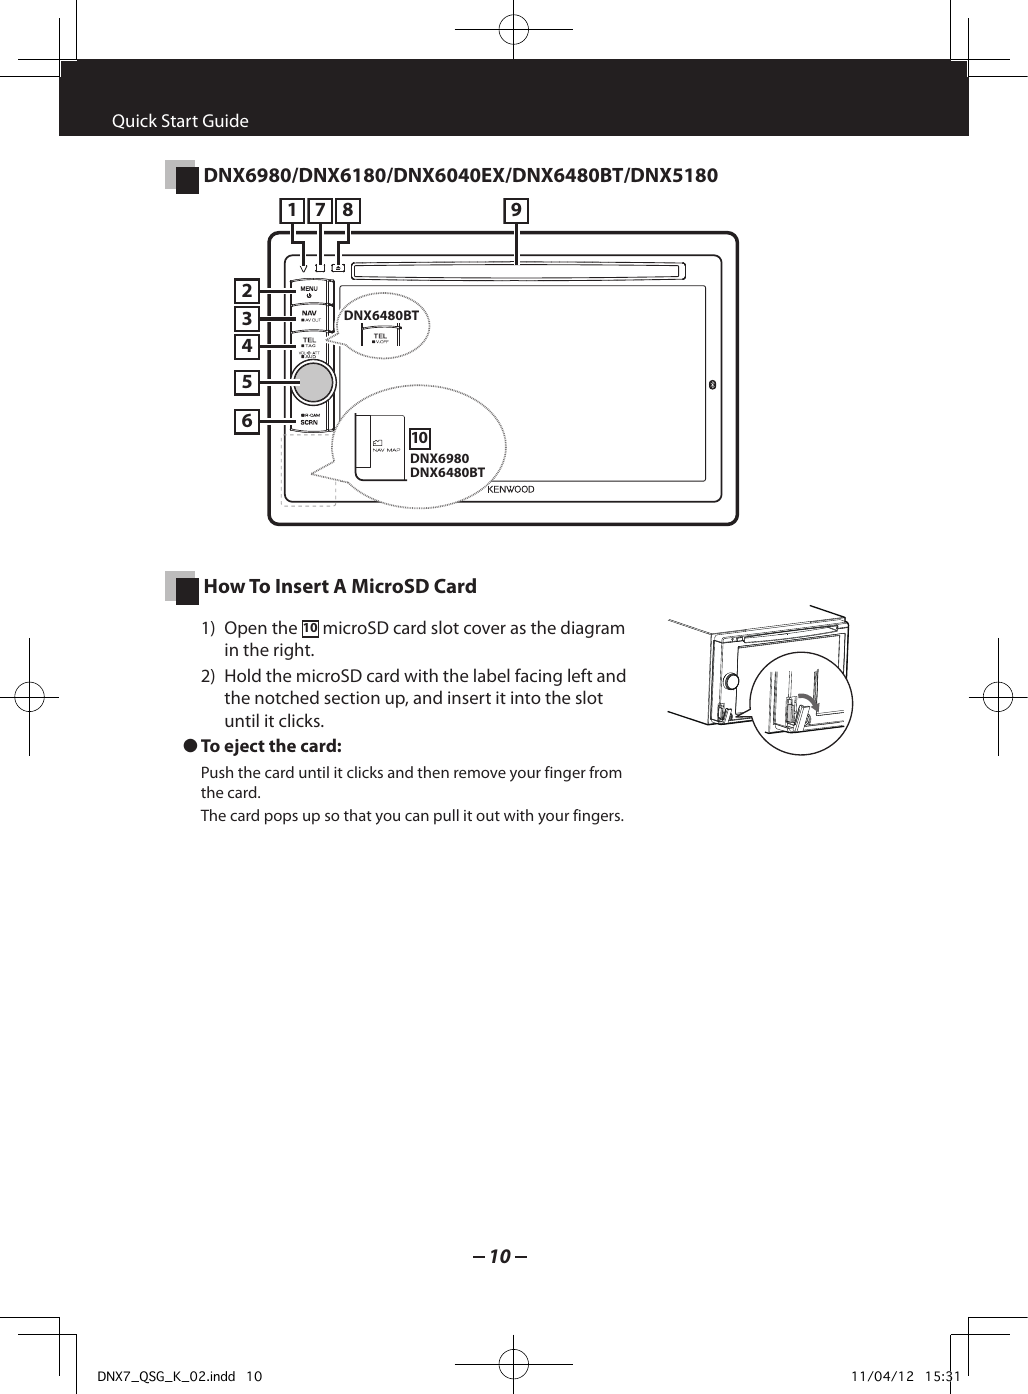 Kenwood Gps Receiver Dnx7180 Users Manual on